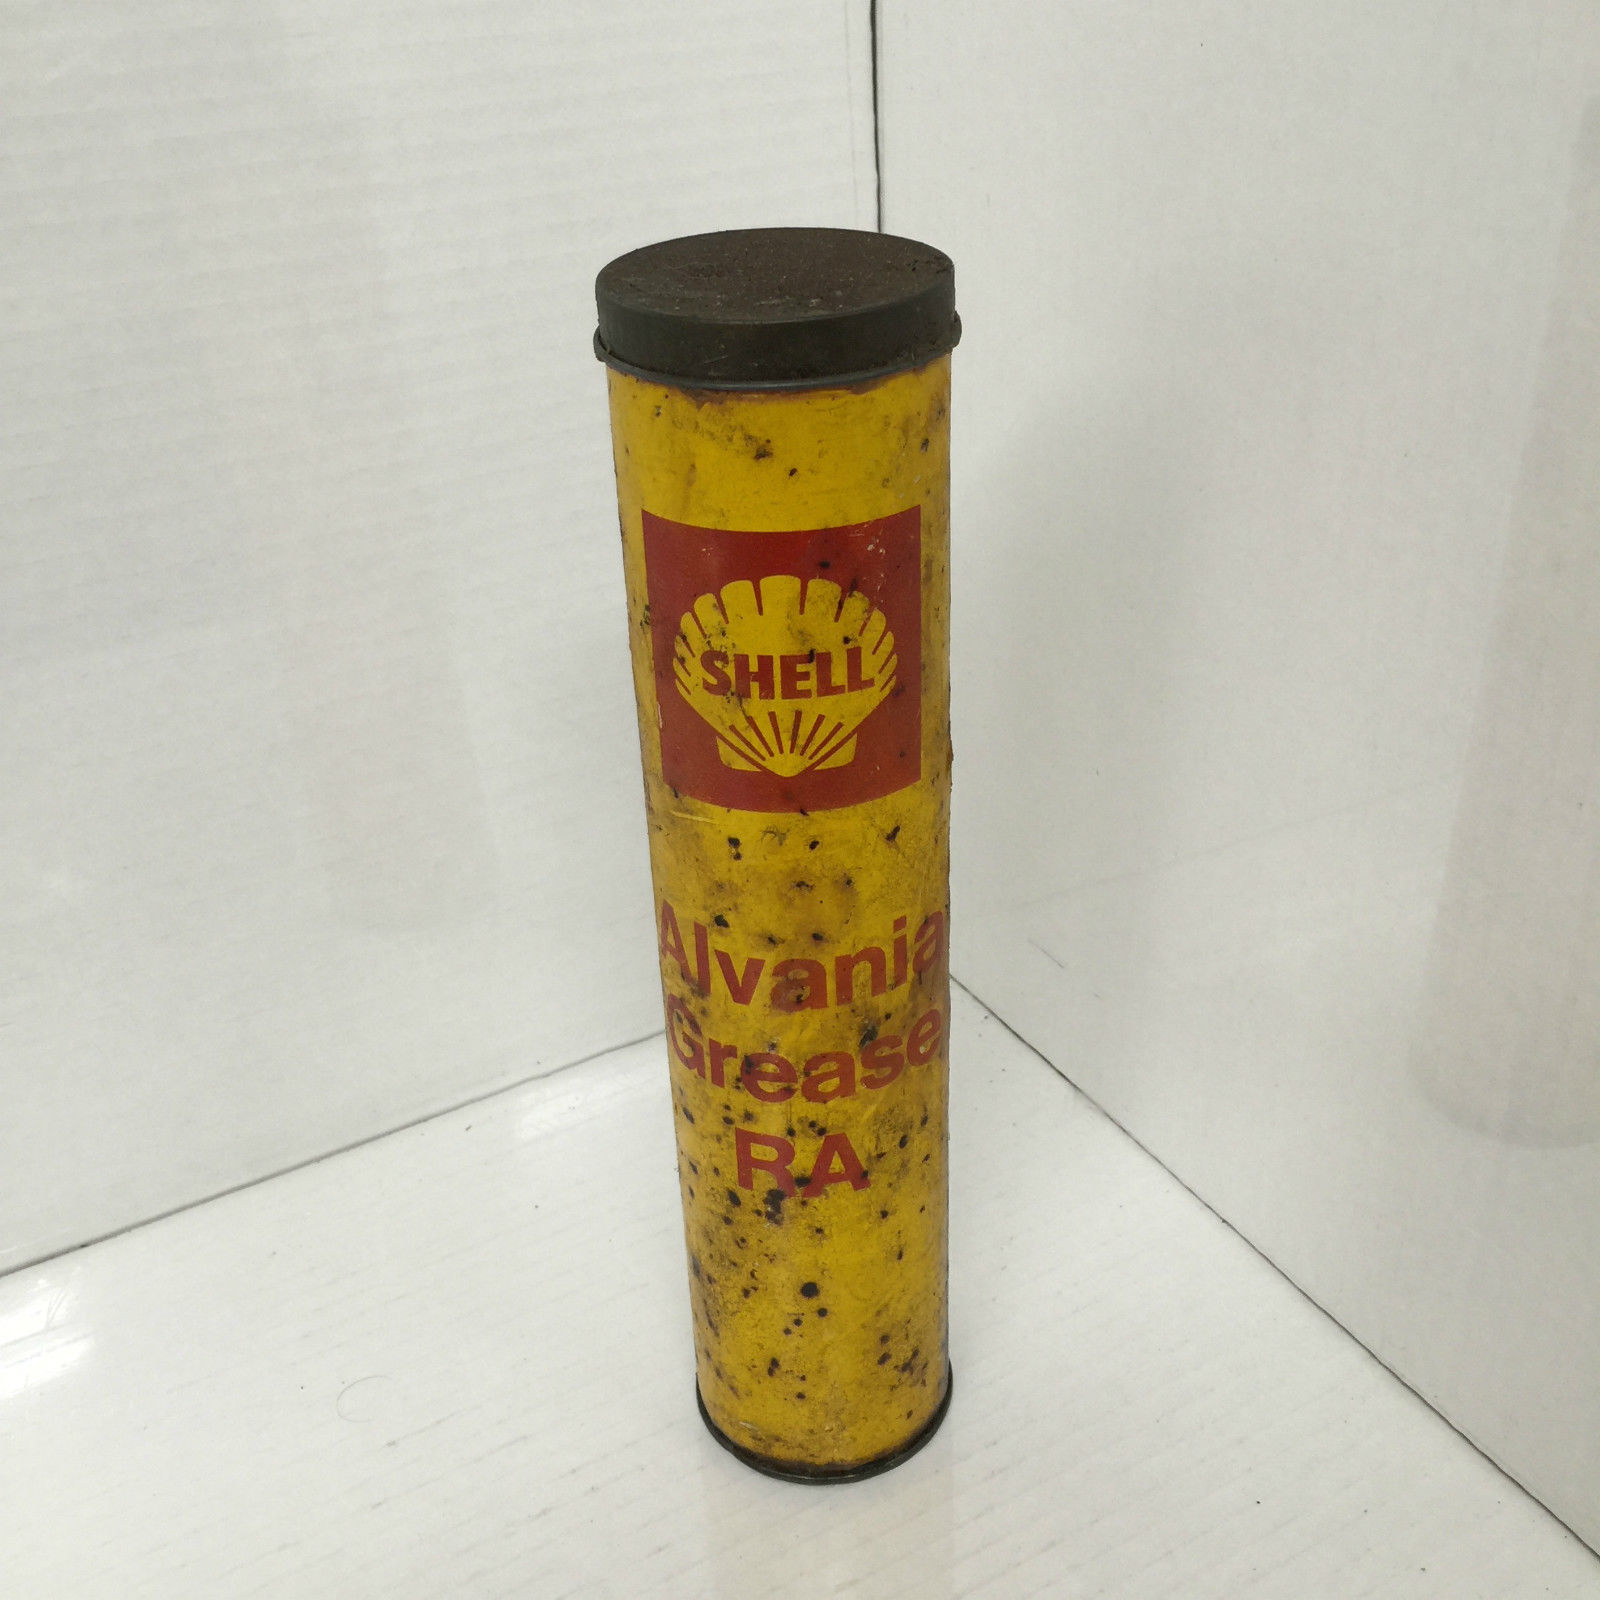 Shell Alvania Grease RA Can